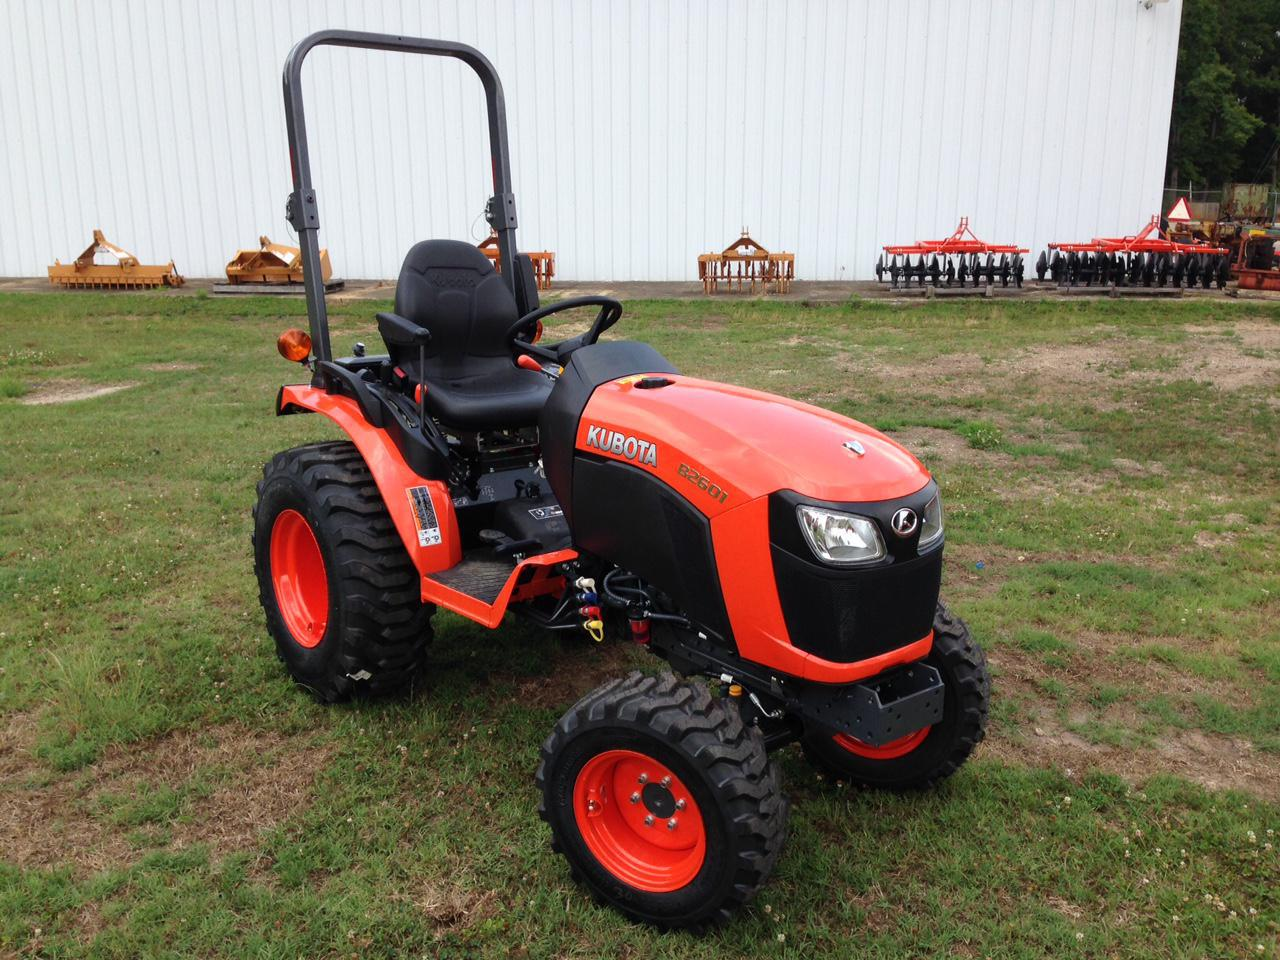 Kubota tractors for sale in kentucky - Call For Price 919 779 0922 The Tractor Center